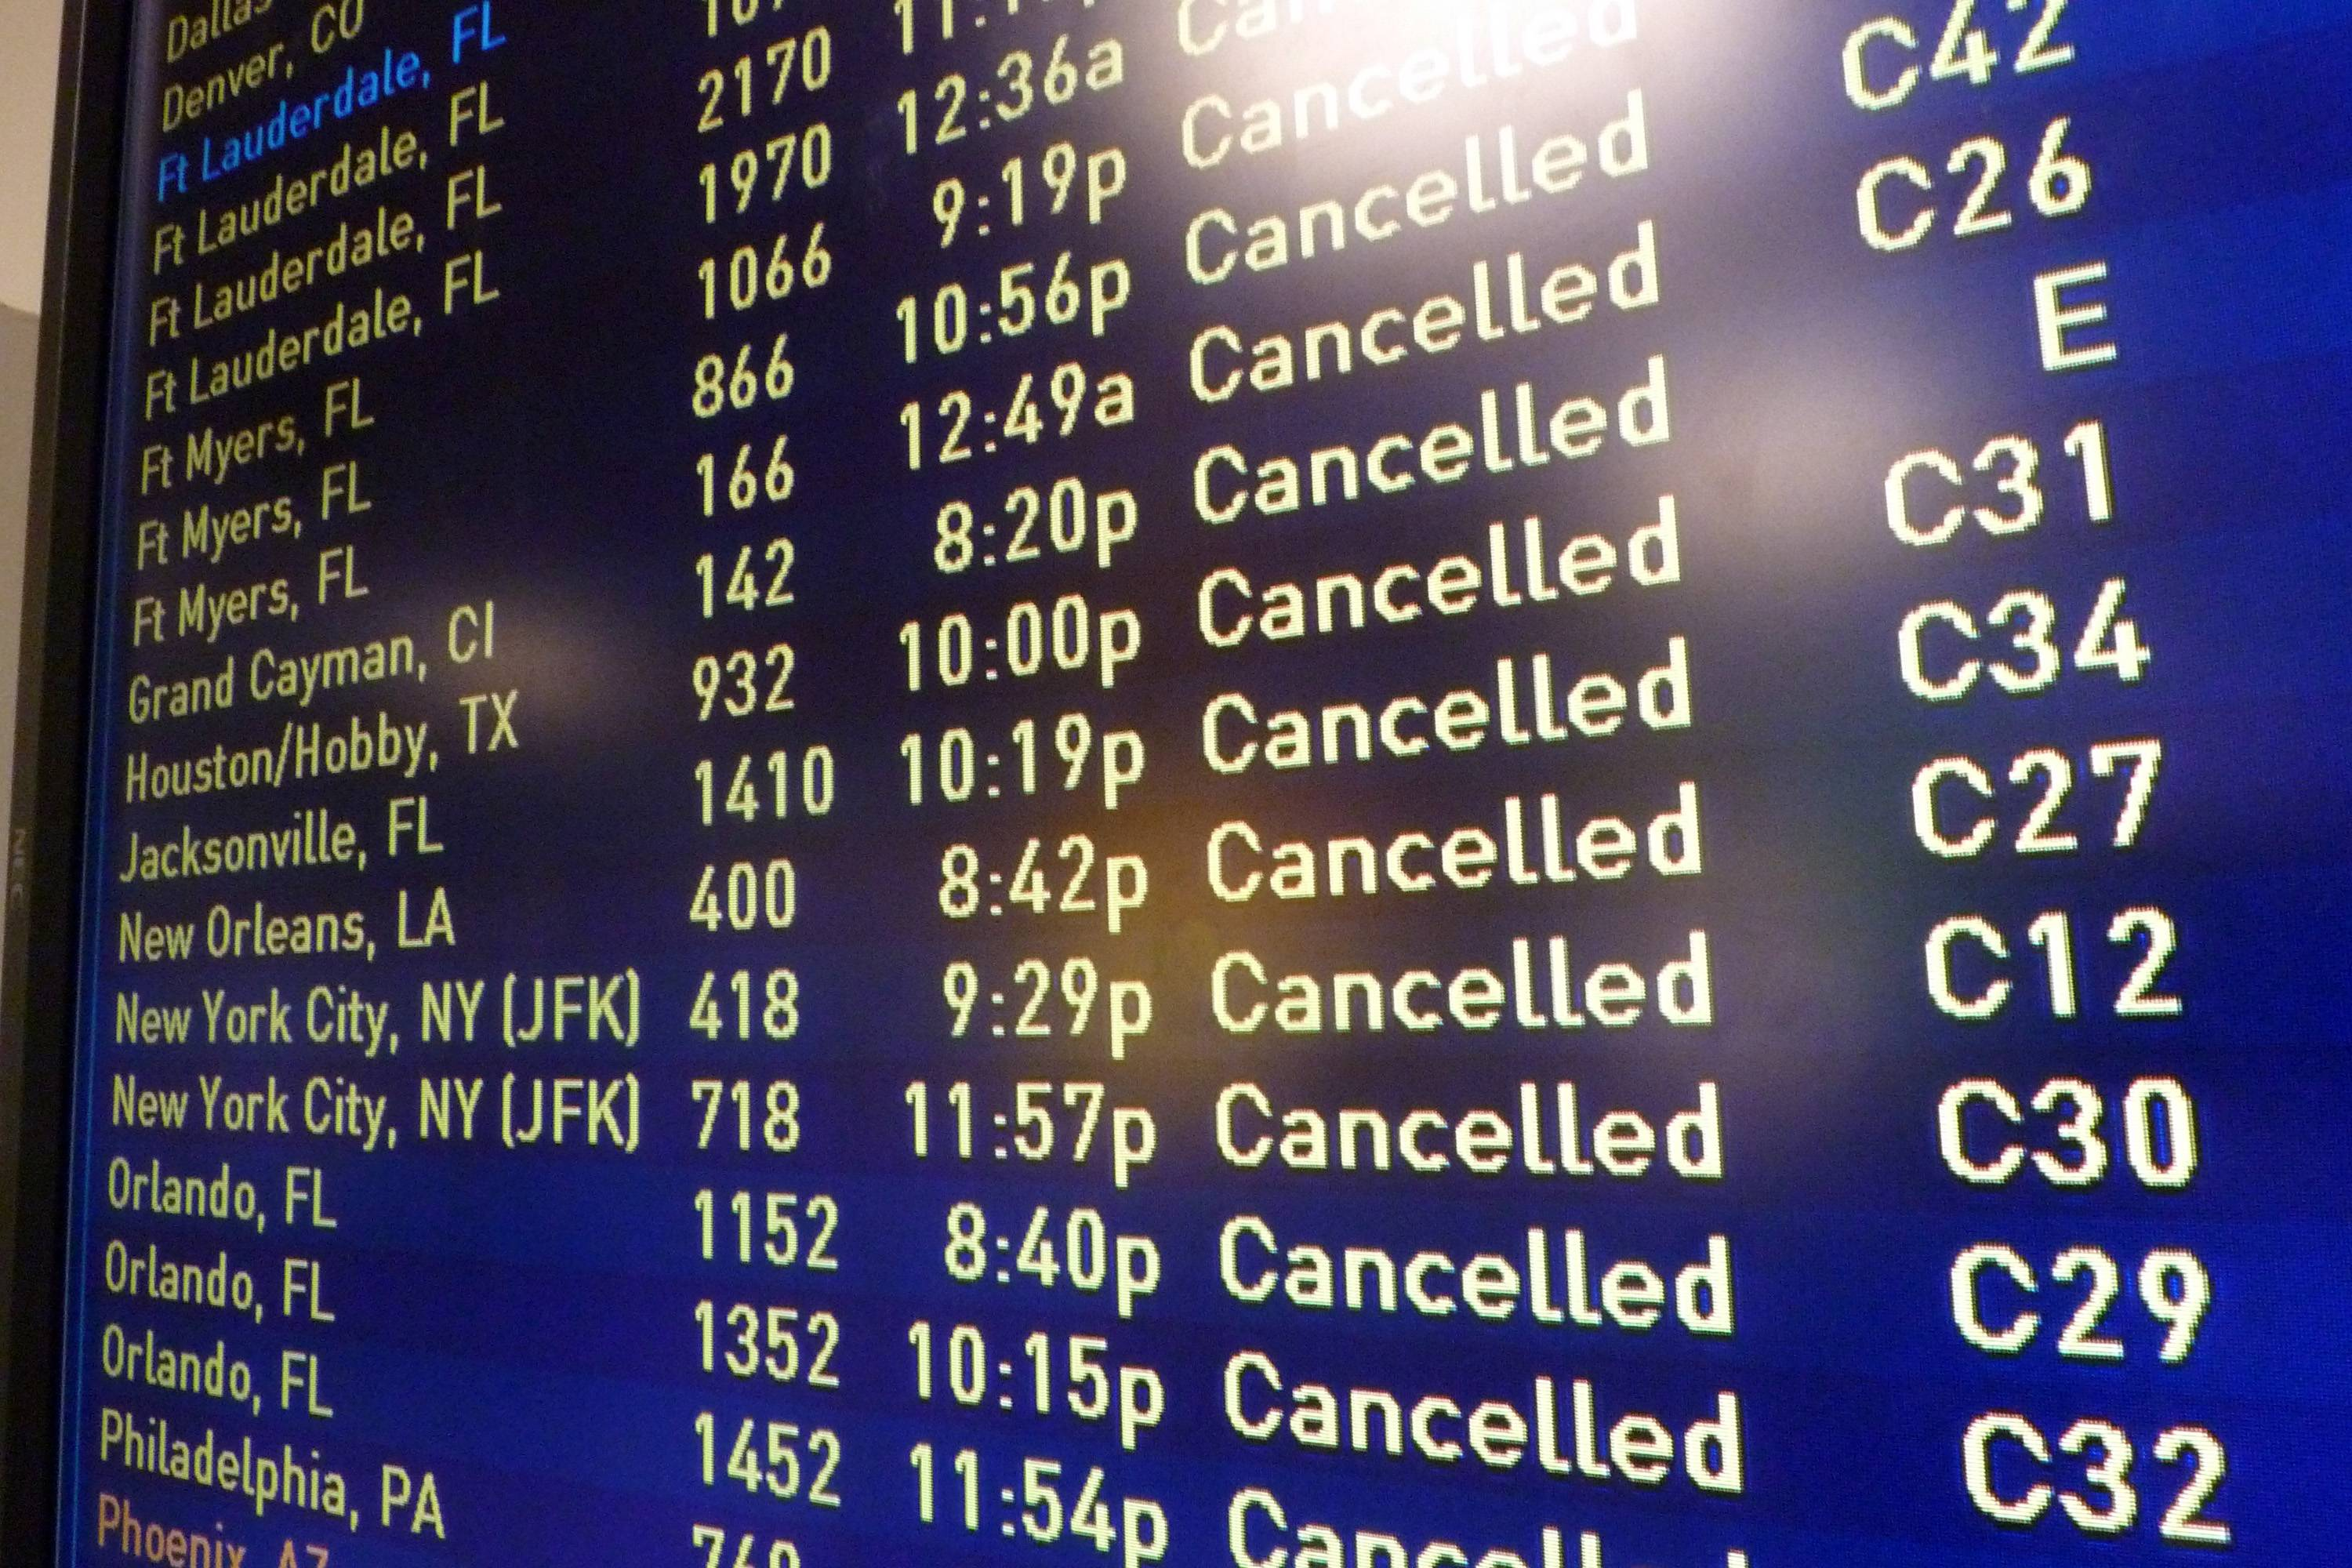 A board displays canceled flights at Logan International Airport in Boston on Saturday evening, Feb. 15, 2014. Another round of snow made its way into the Northeast on the heels of a storm that brought snow and ice to the East Coast, caused at least 25 deaths and left hundreds of thousands without power.